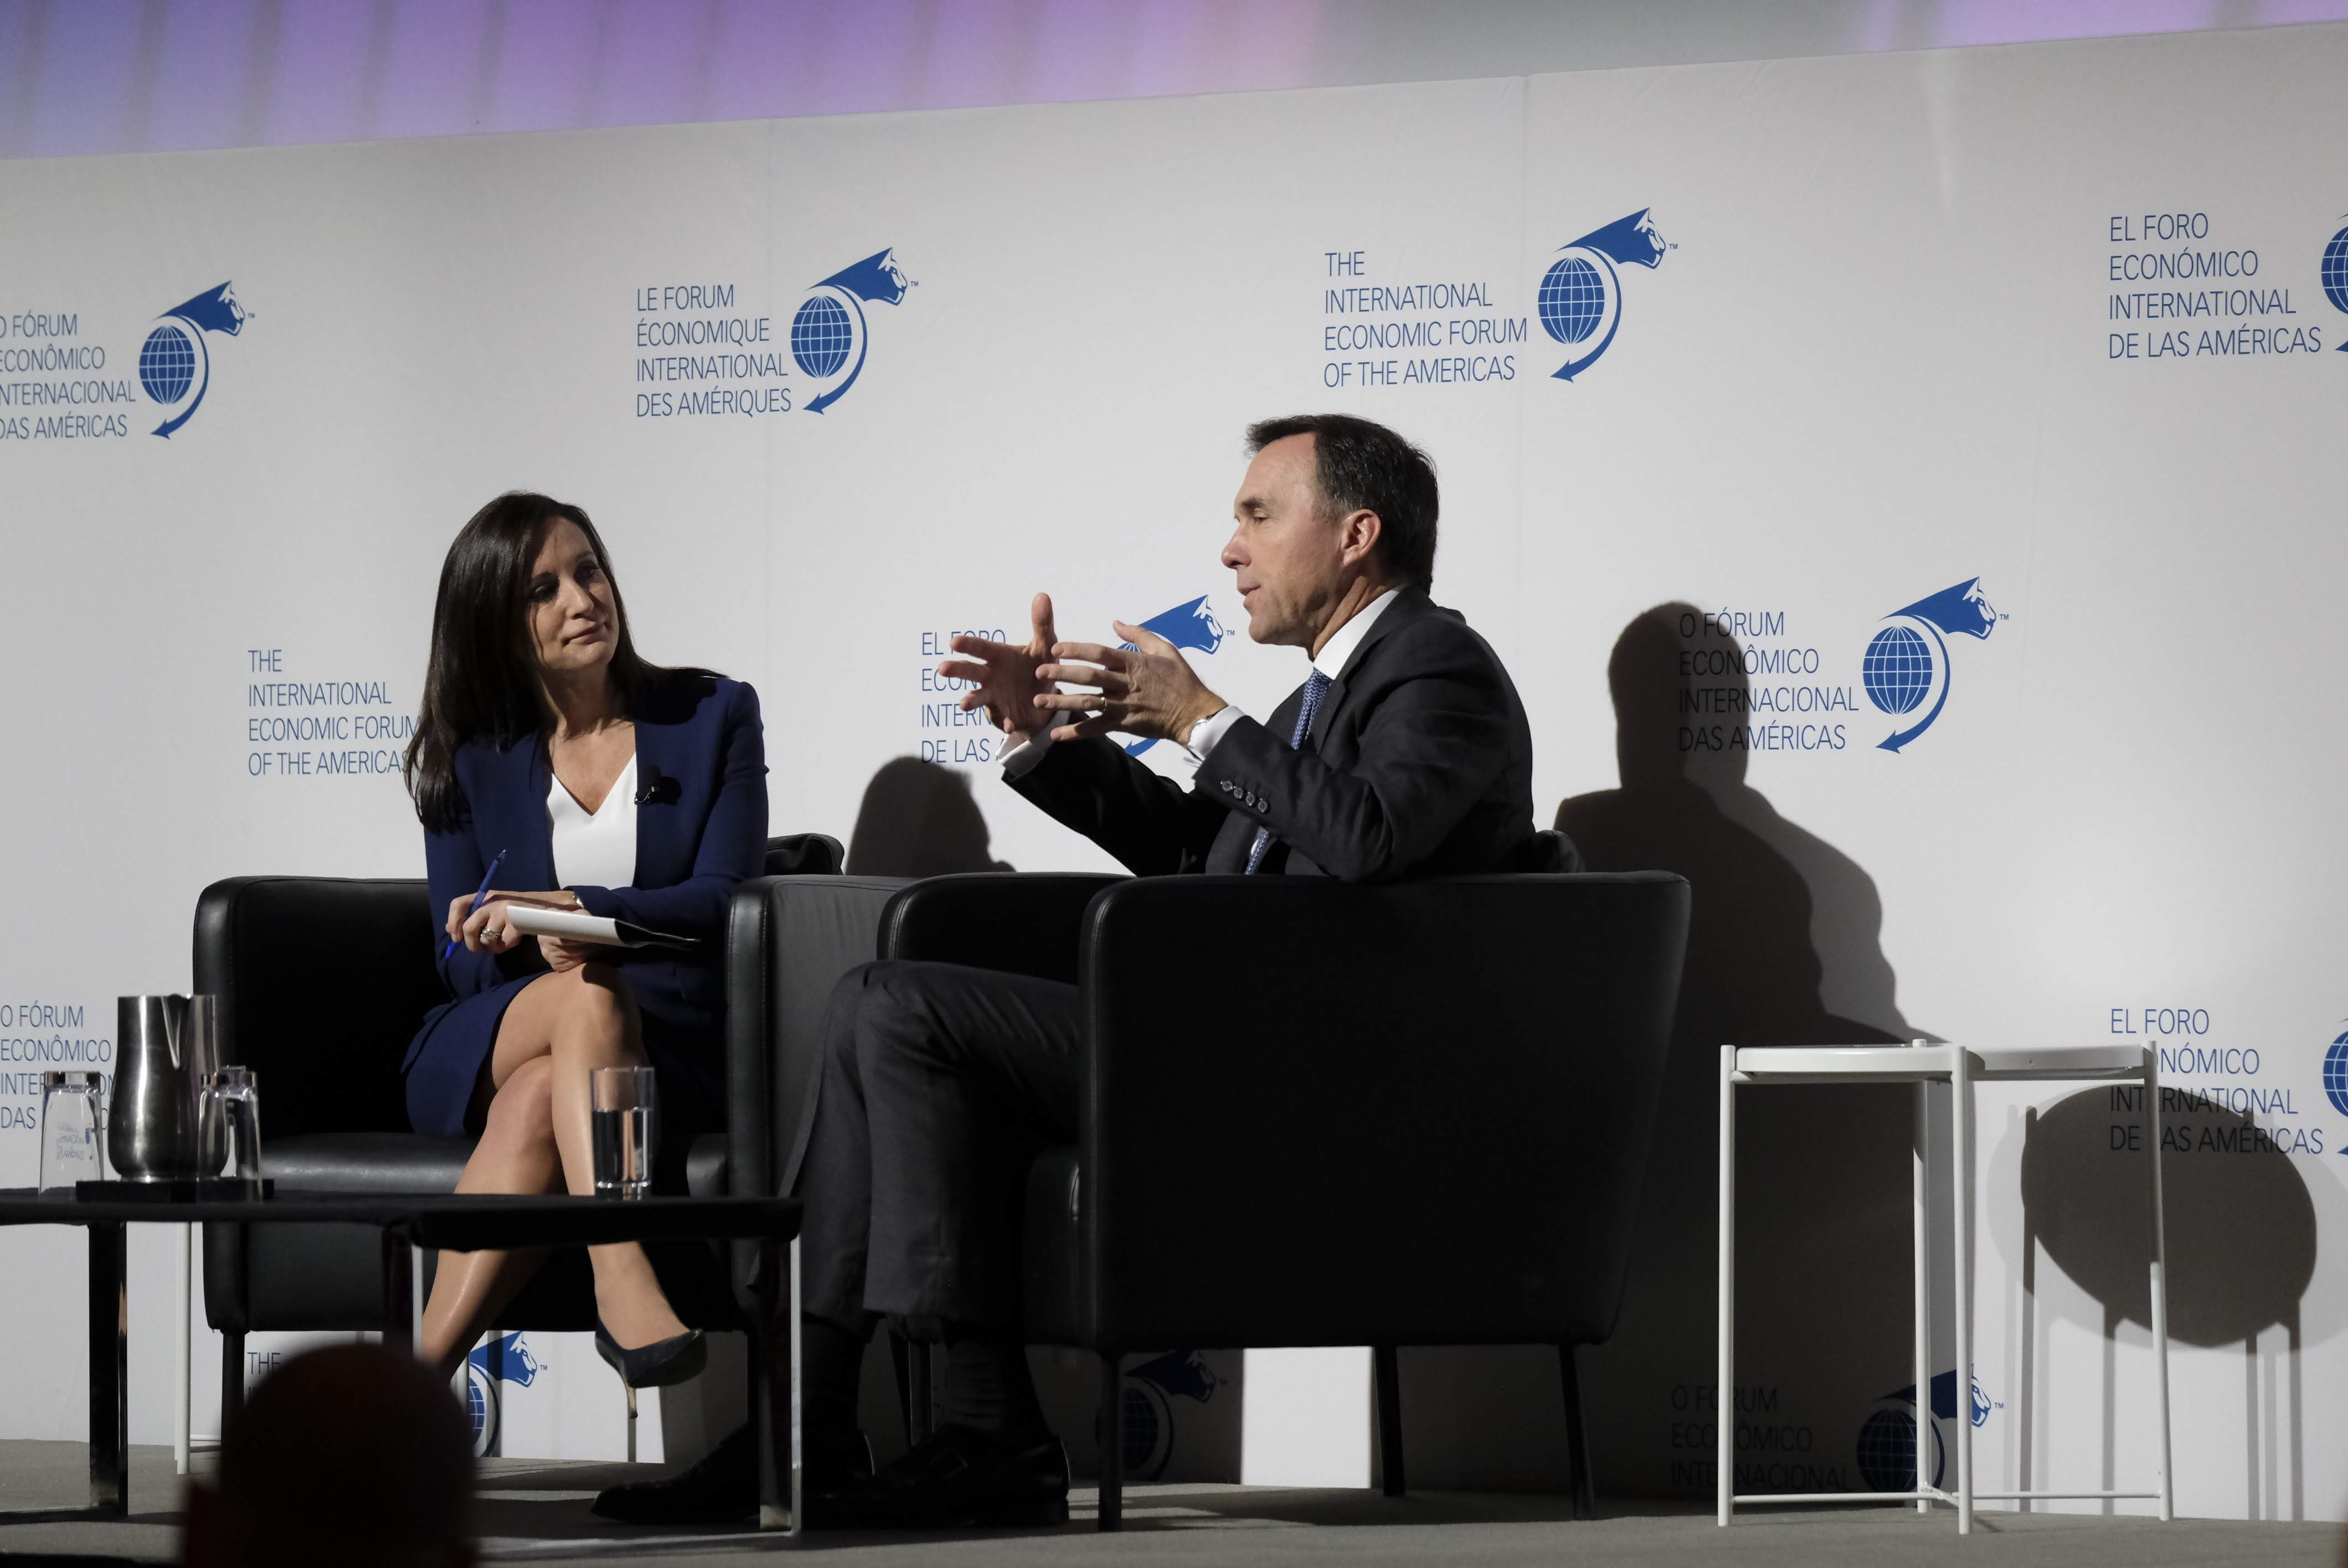 Fireside Chat - William Francis Morneau, Minister of Finance, Canada interviewed by Amanda Lang, Anchor, BNN Bloomberg